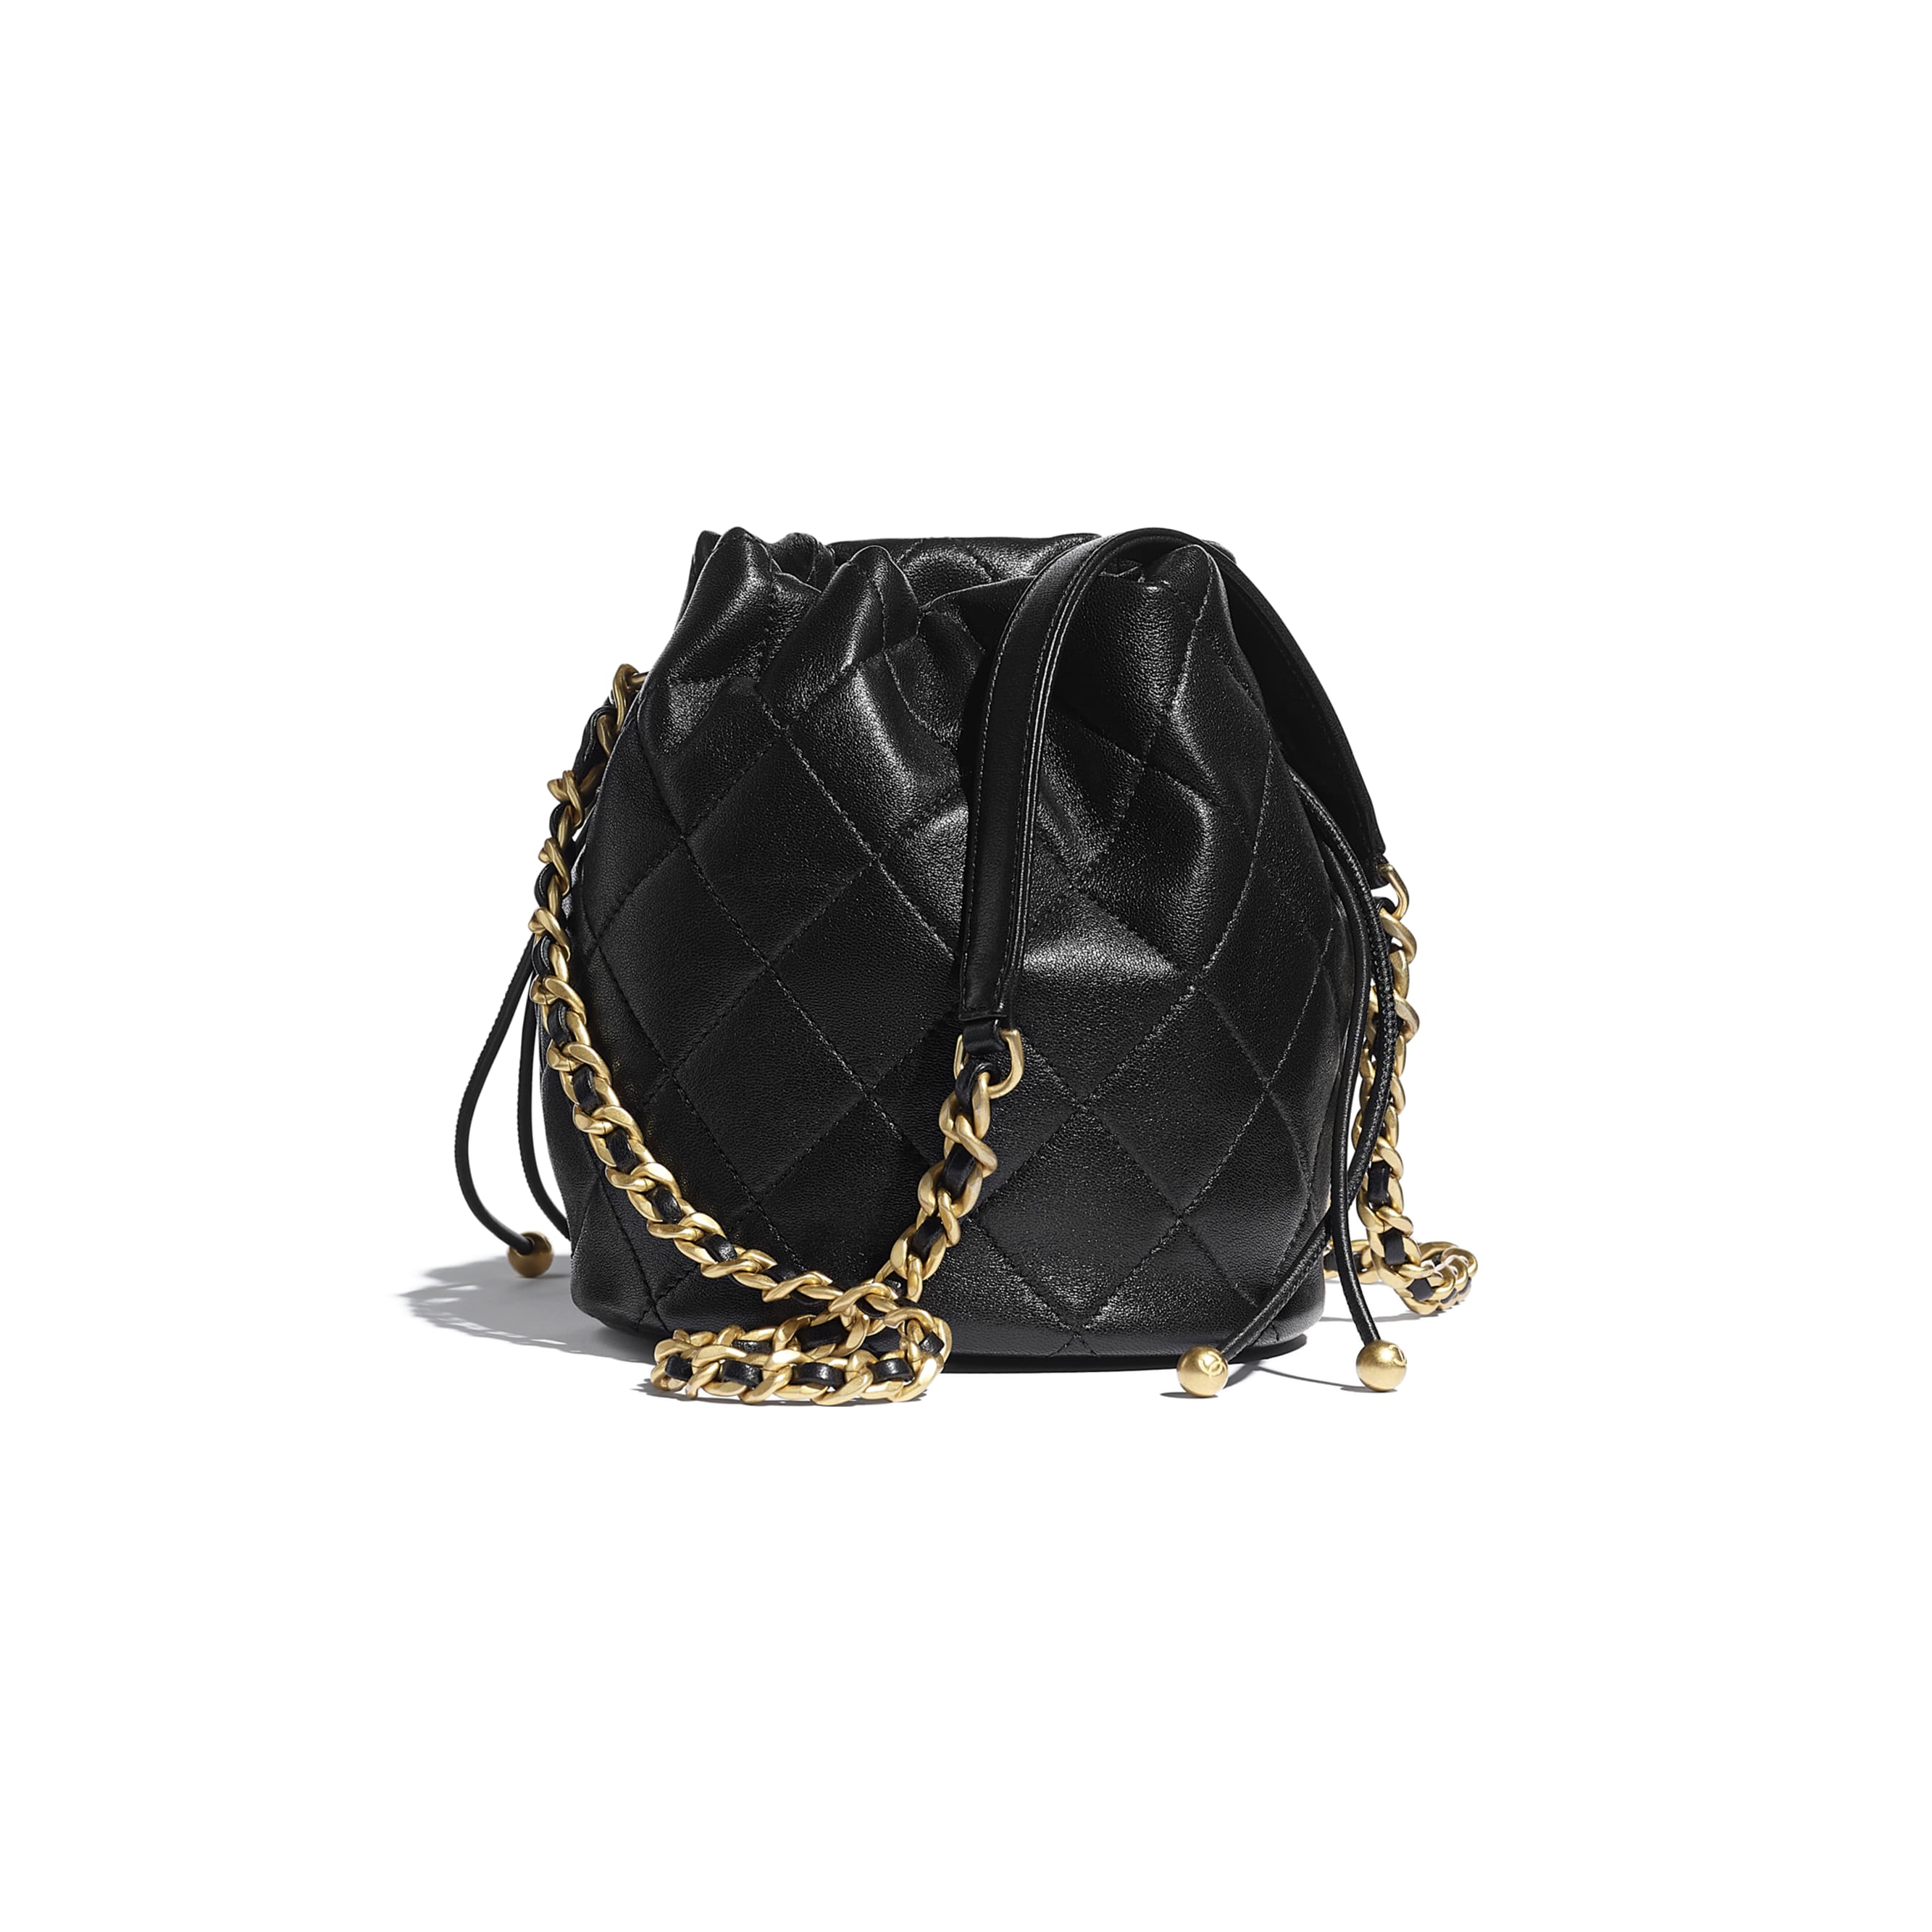 Drawstring Bag - Black - Shiny Lambskin & Gold-Tone Metal - CHANEL - Alternative view - see standard sized version